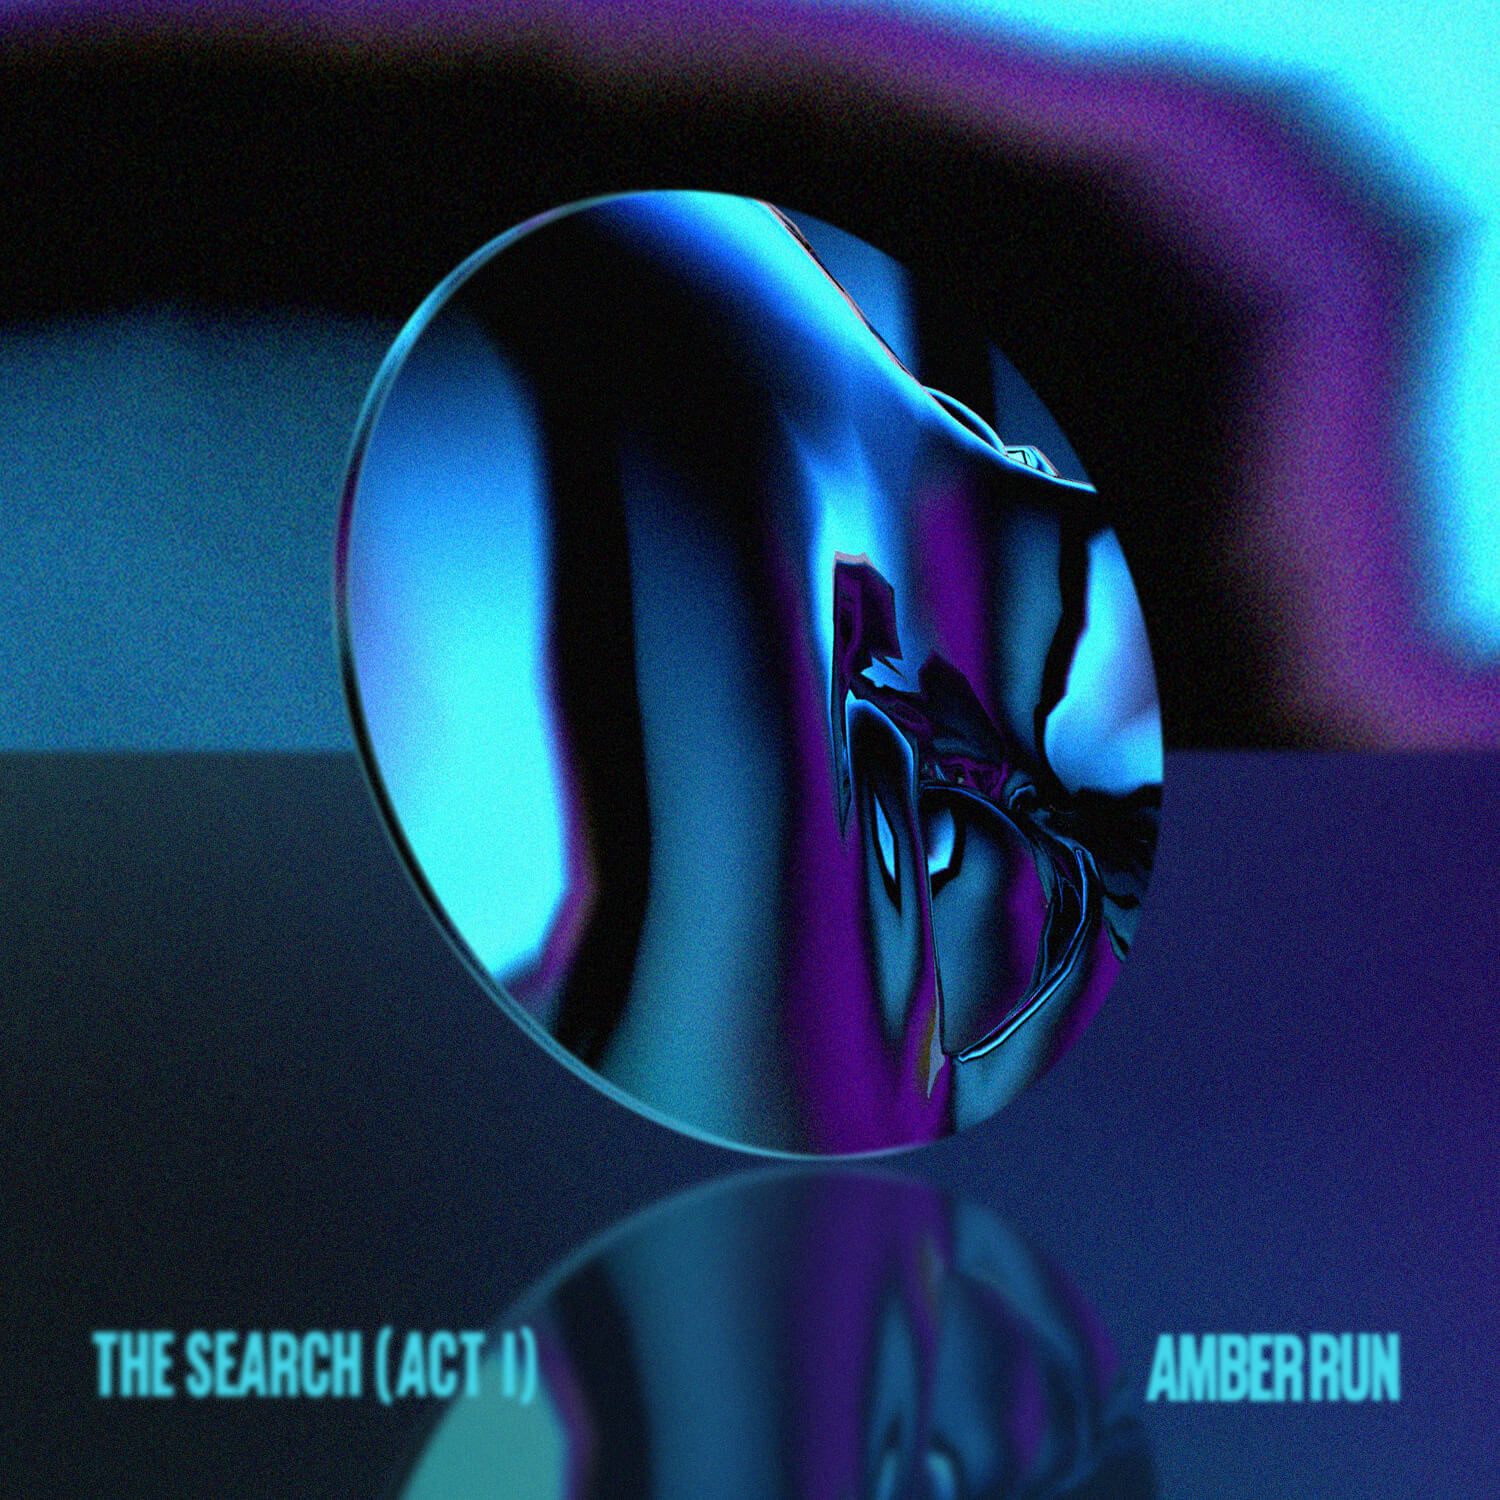 Amber Run - The Search (Act I) cover